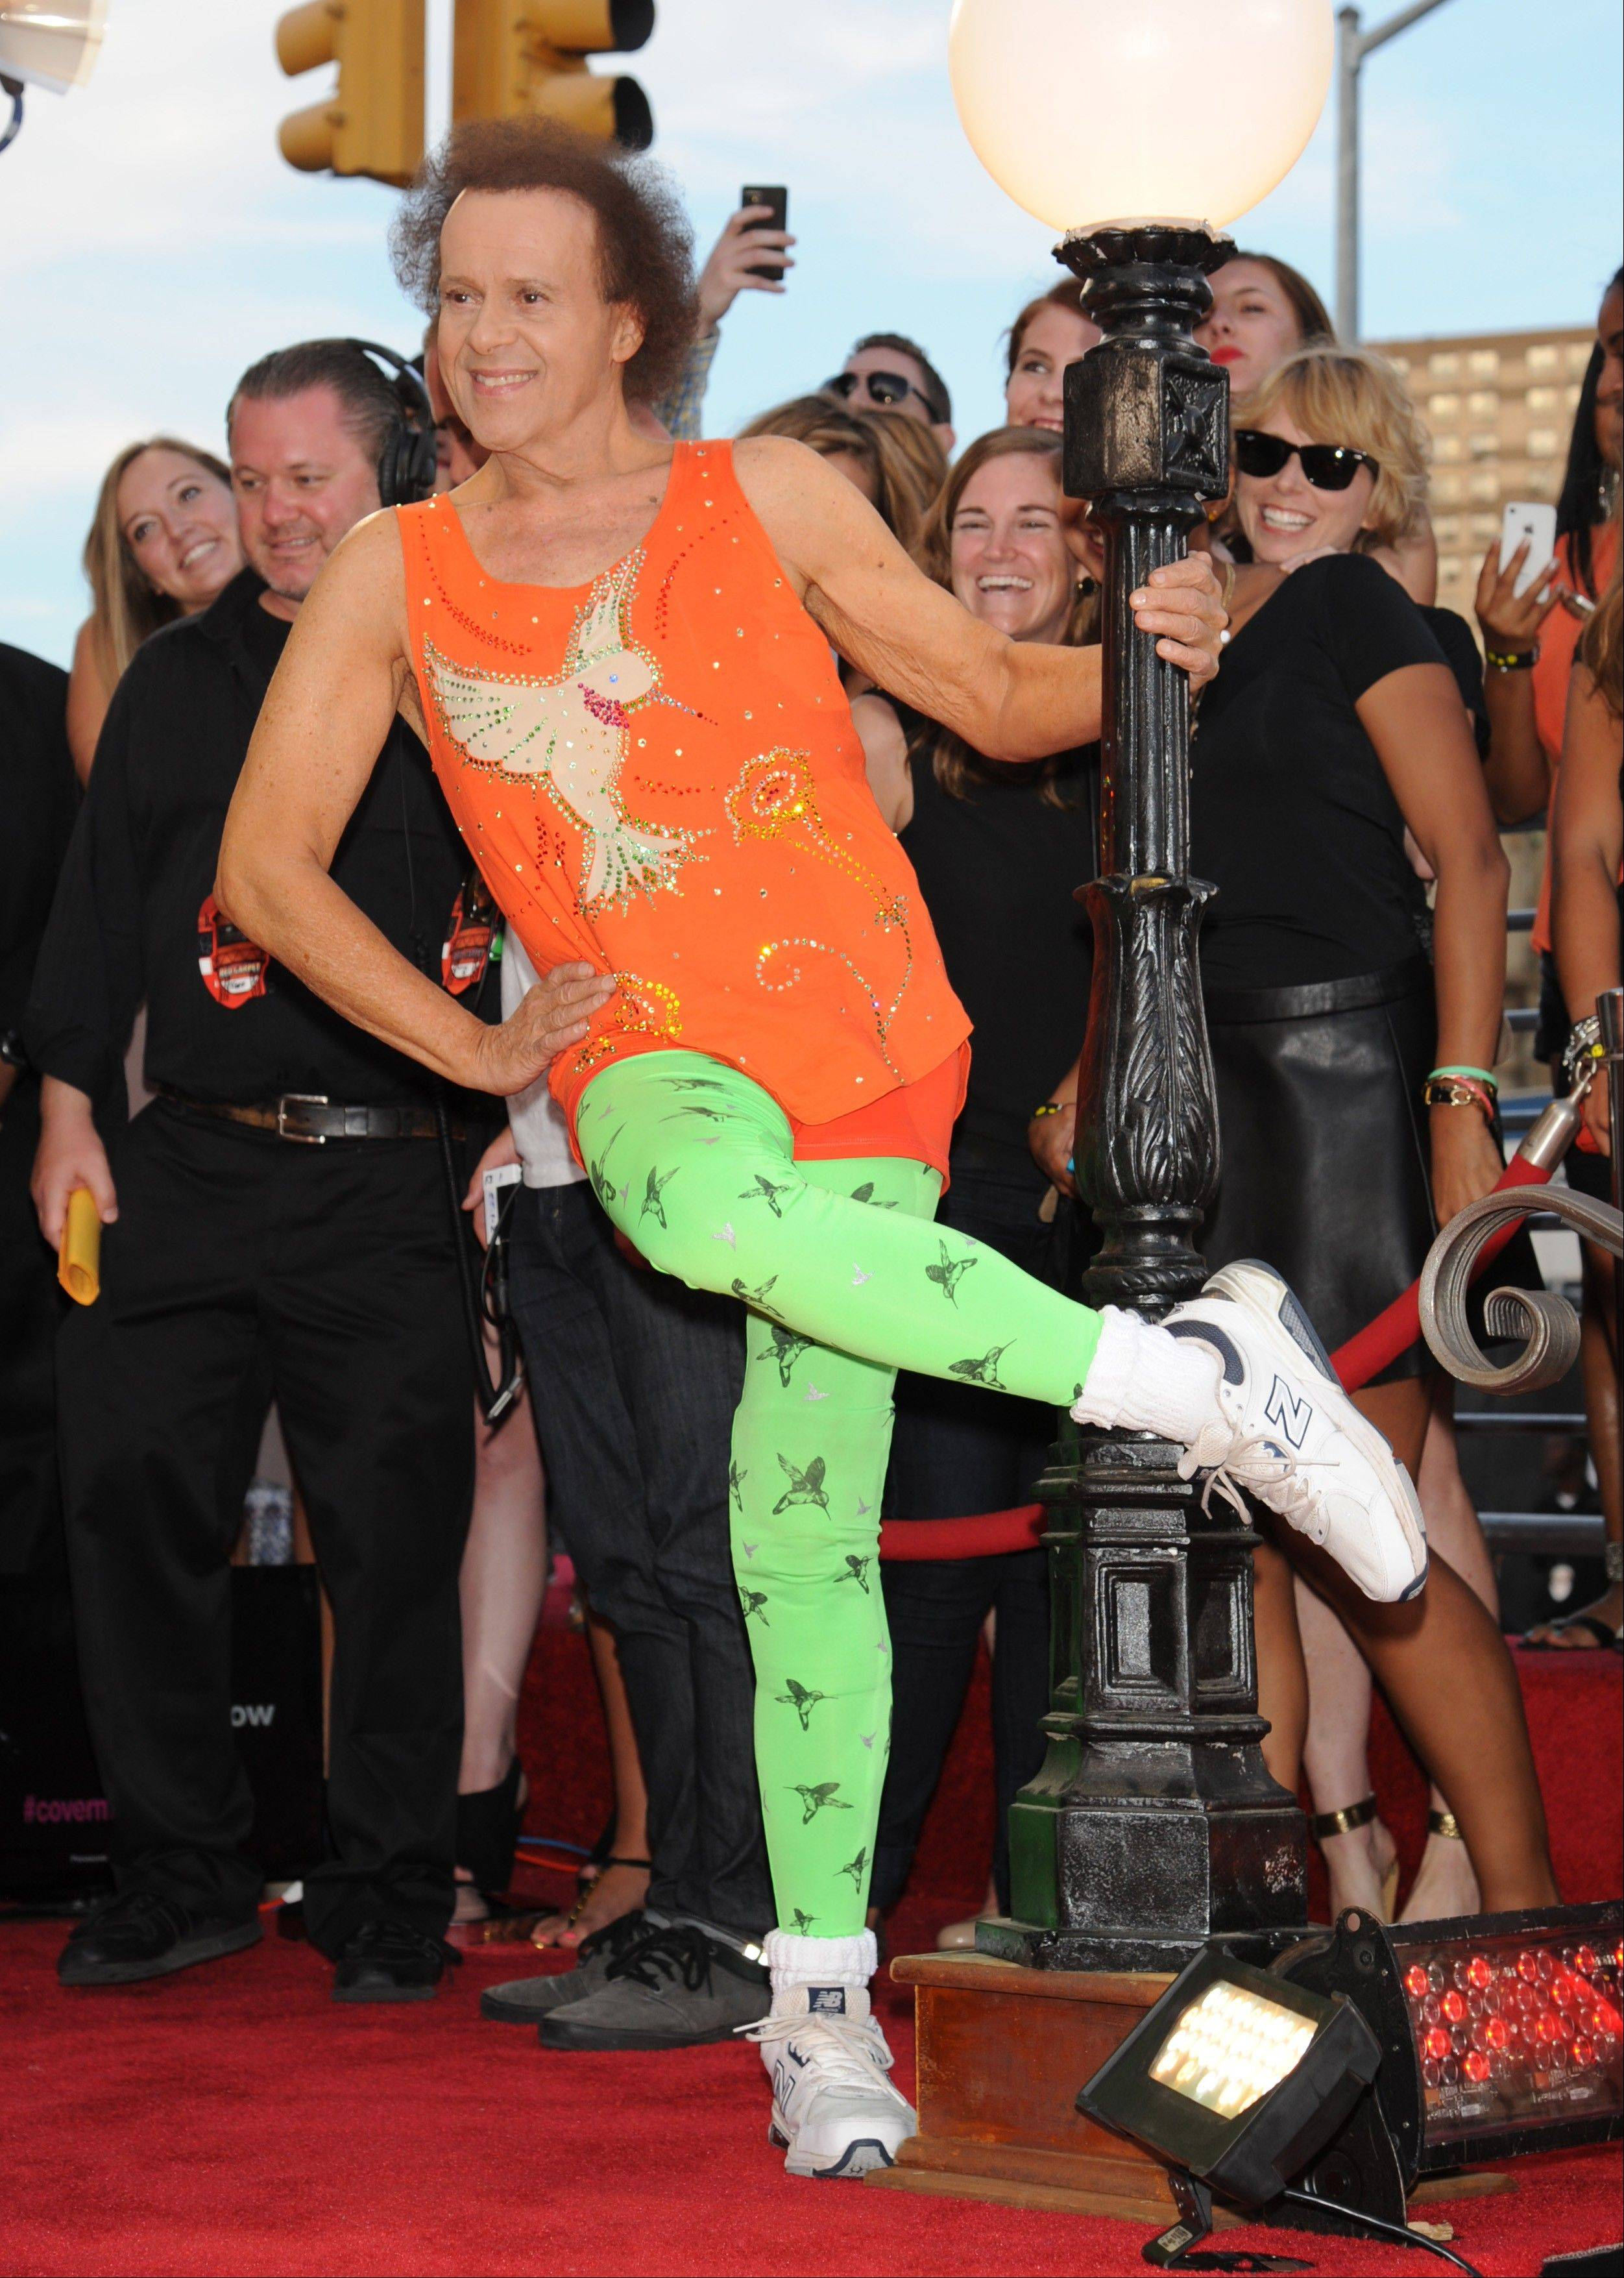 Fitness guru Richard Simmons arrives at the MTV Video Music Awards on Sunday, Aug. 25, 2013, at the Barclays Center in the Brooklyn borough of New York.